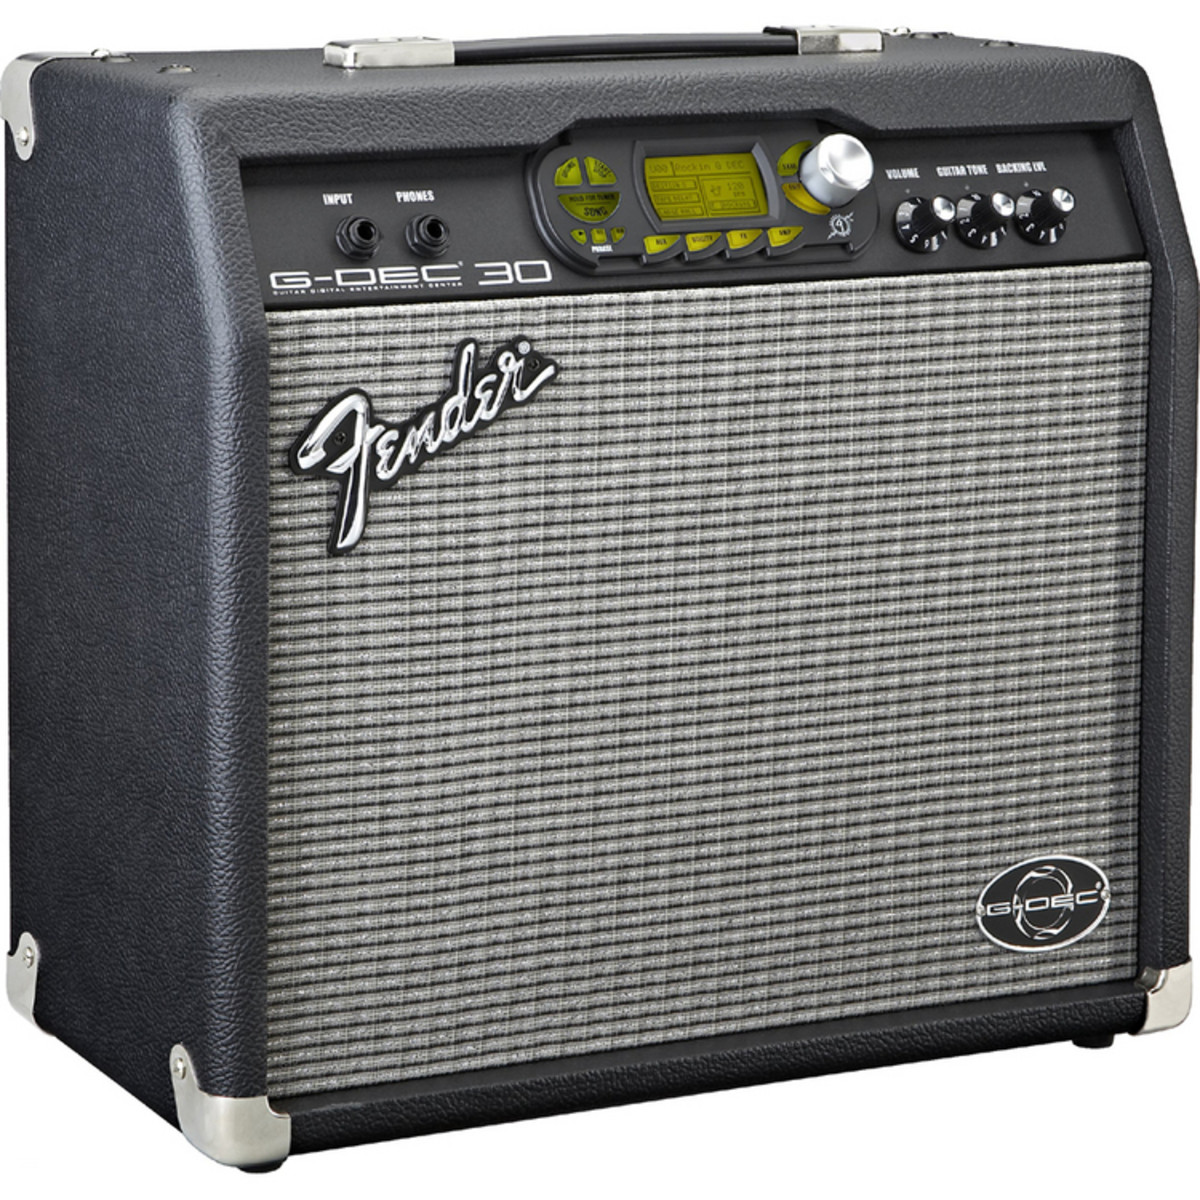 discontinued fender g dec 30 electric guitar amplifier at gear4music. Black Bedroom Furniture Sets. Home Design Ideas